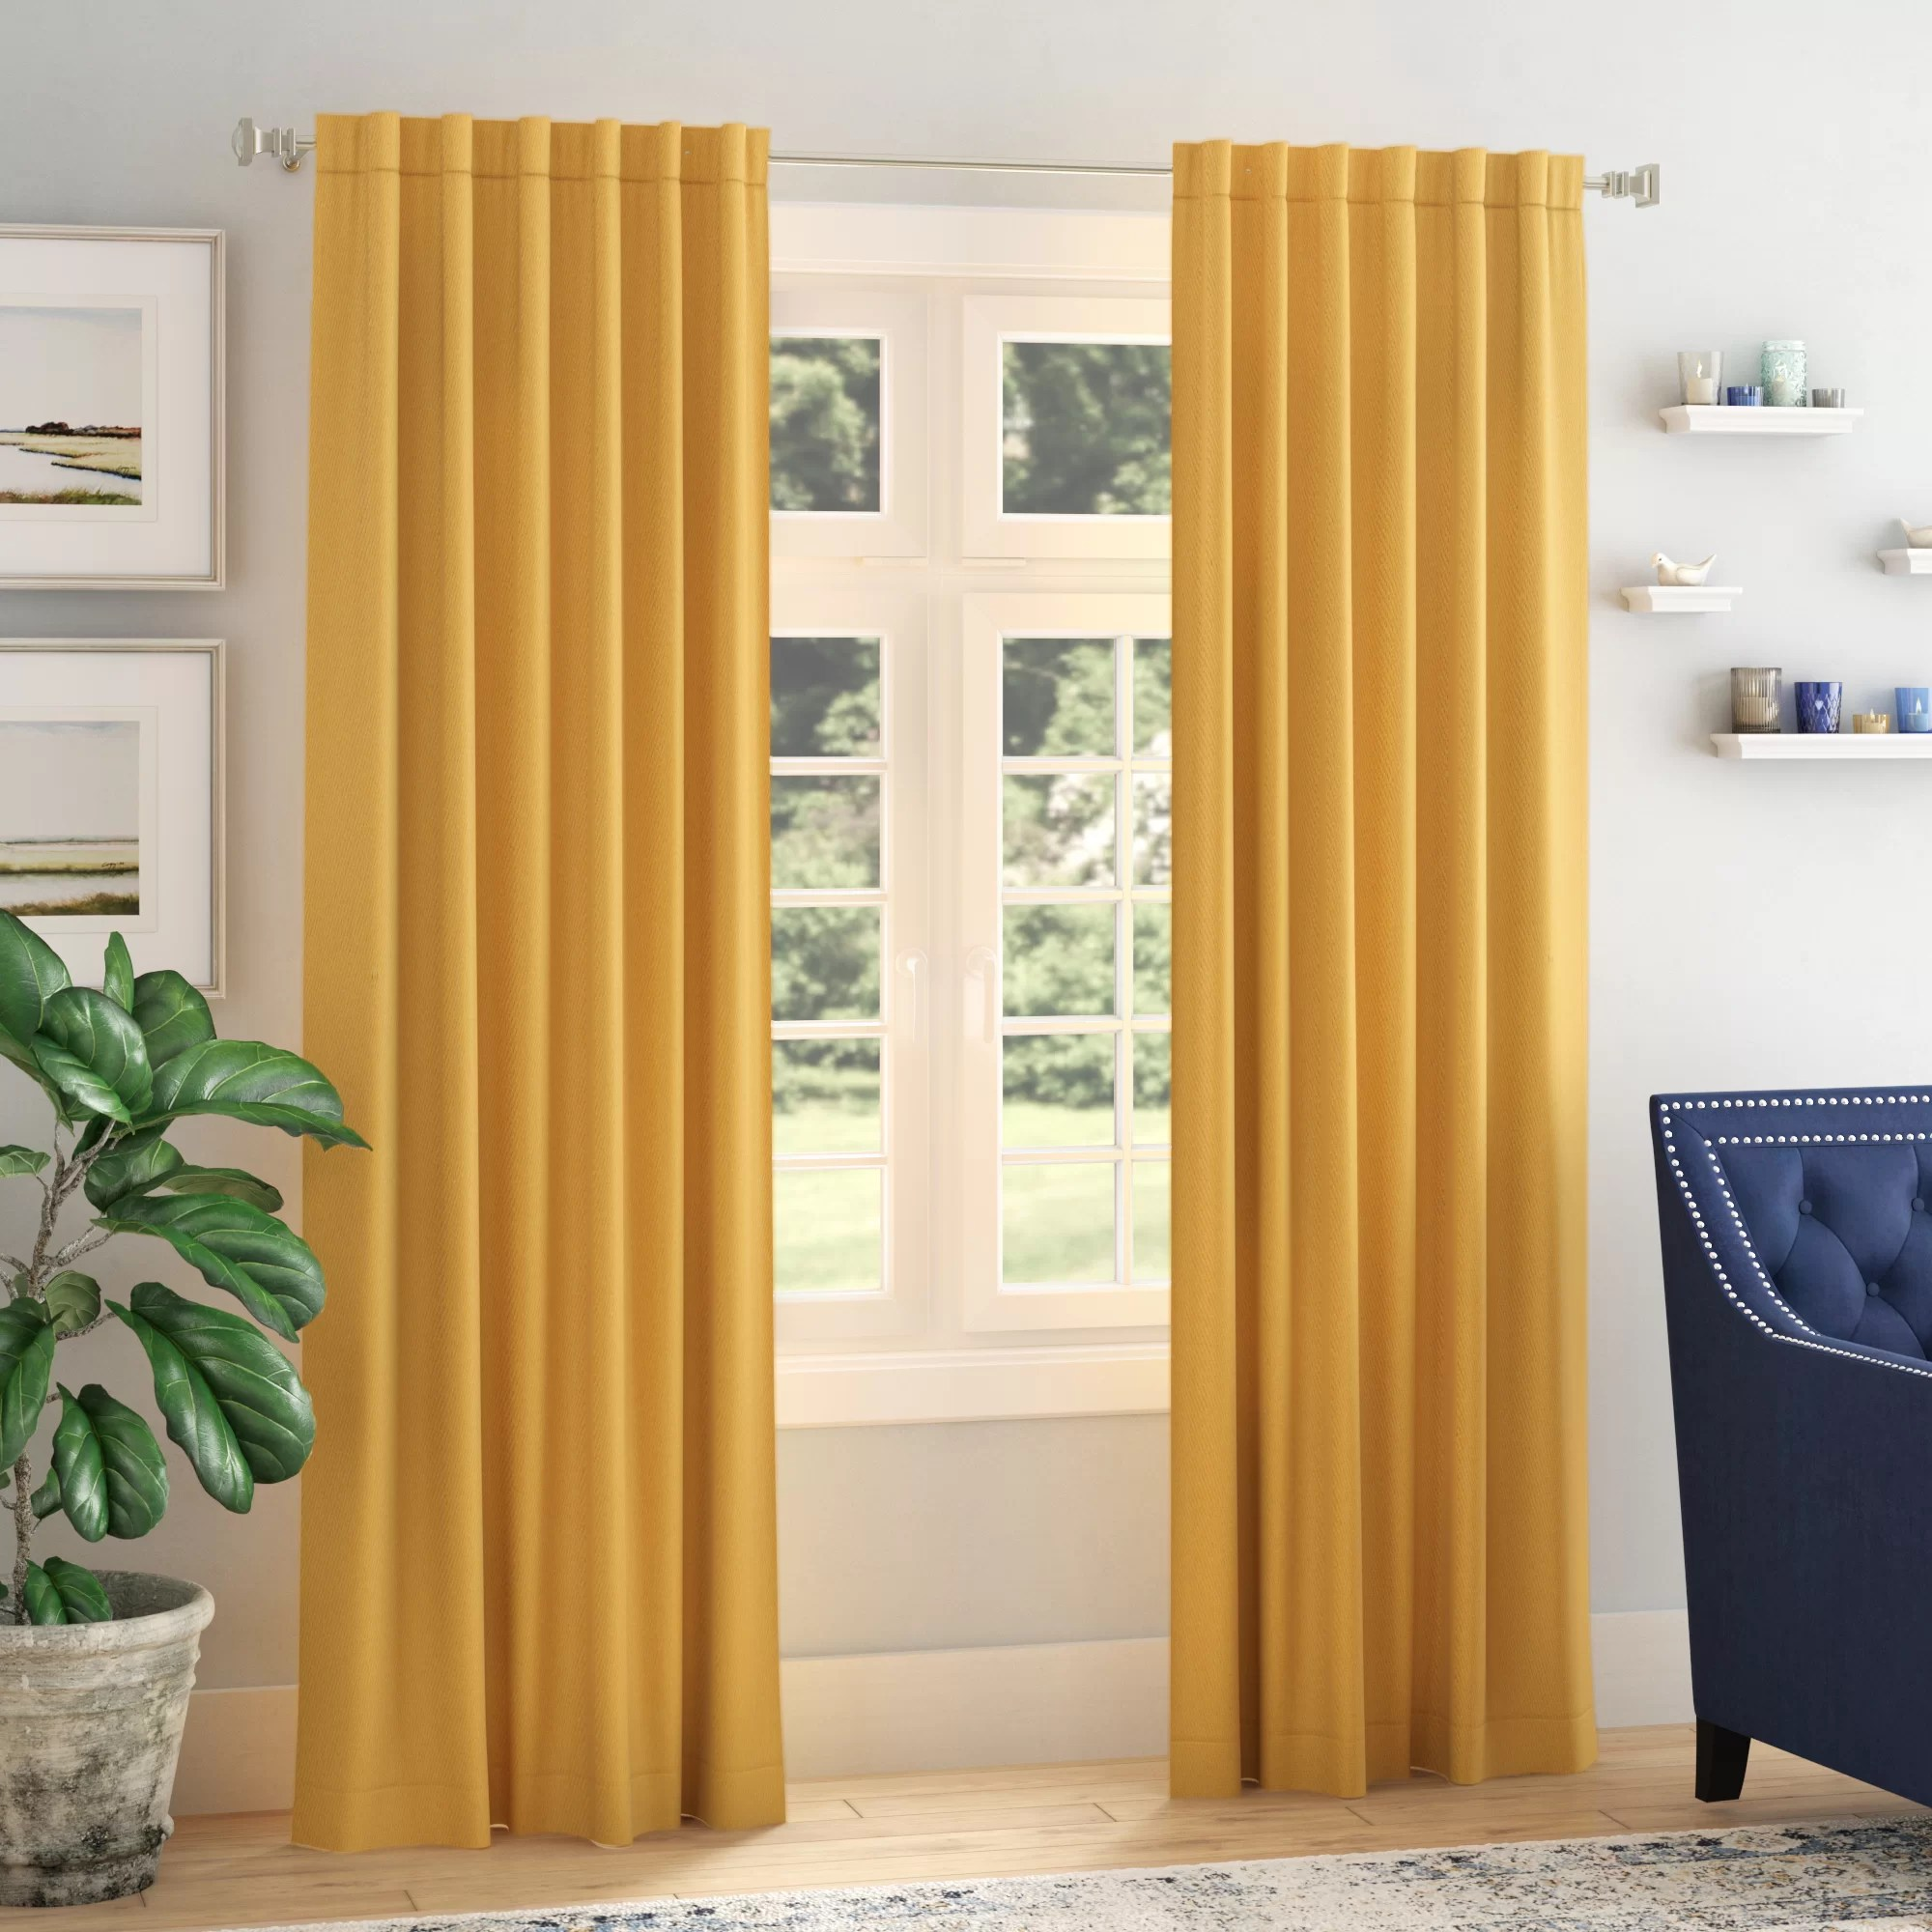 Panel Curtain Rods Destinie Indoor Solid Color Blackout Curtain Rod Pocket Panel Pair